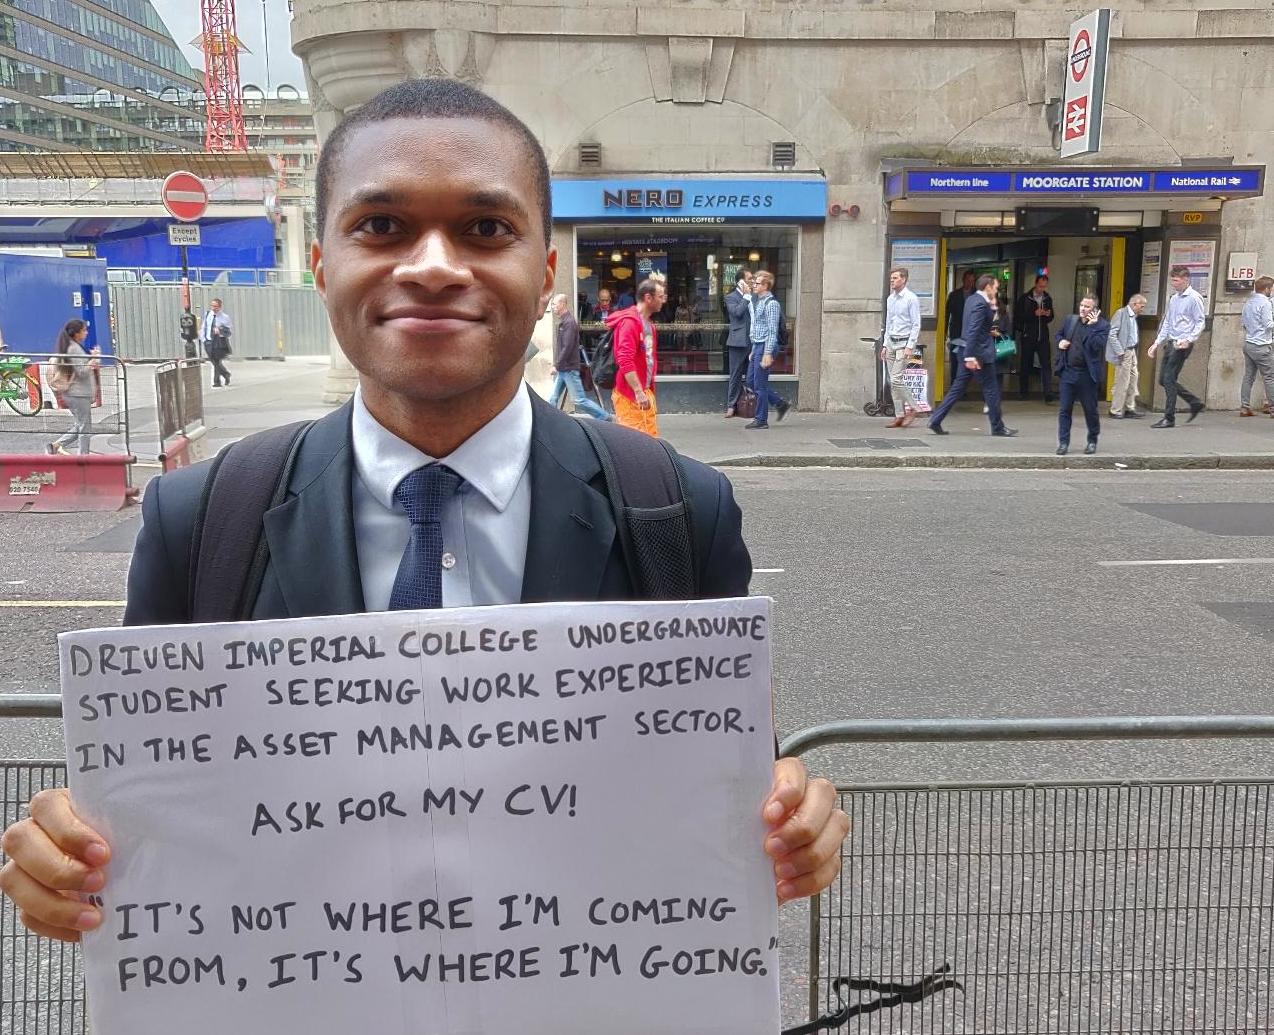 Going for broke(rs): Student takes job hunt to Moorgate station for his big break in finance